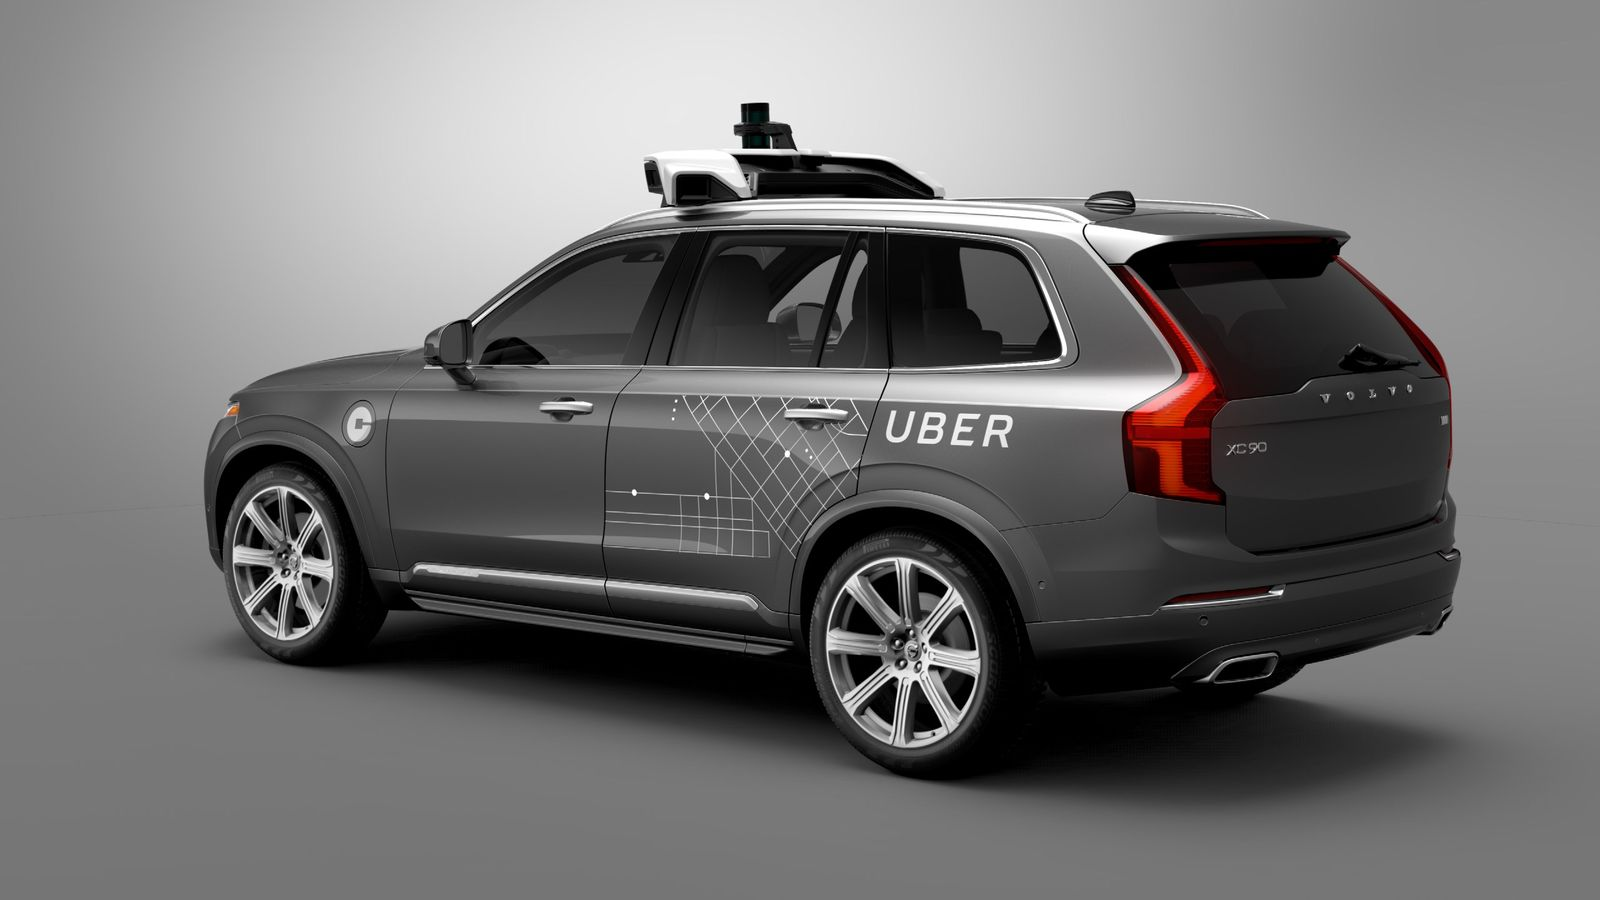 194844_Volvo_Cars_and_Uber_join_forces_to_develop_autonomous_driving_cars.0